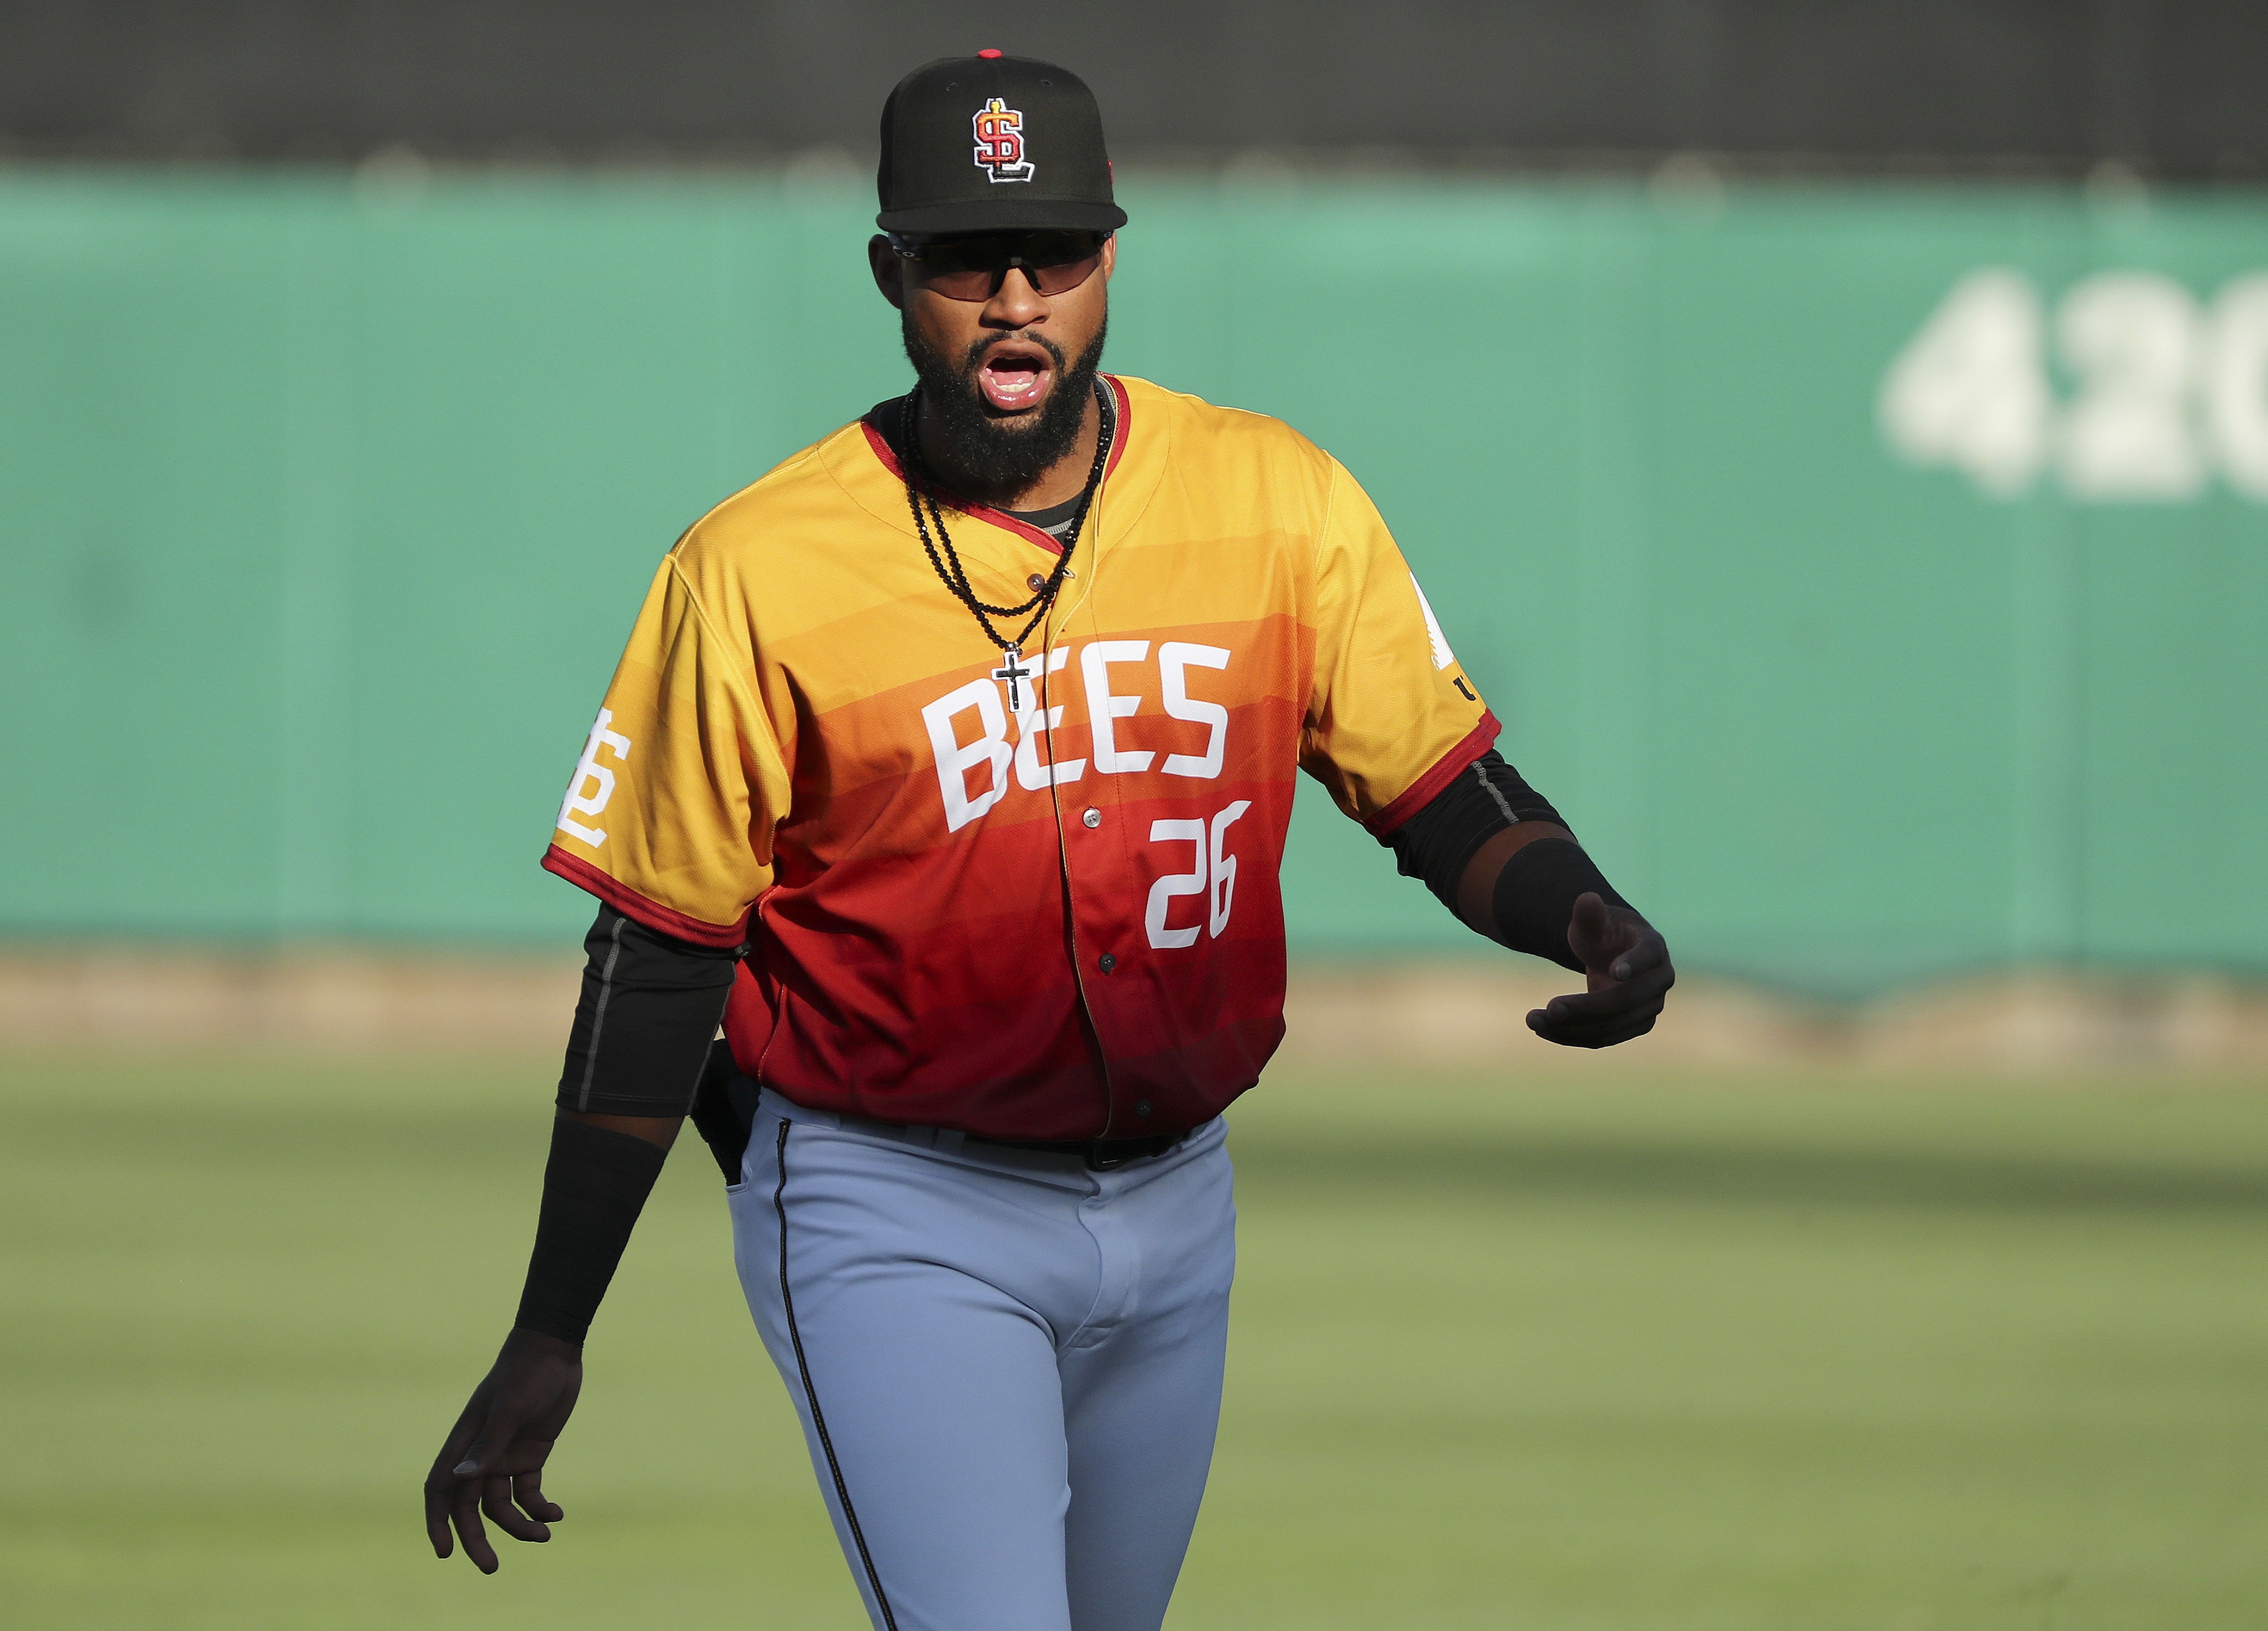 Jo Adell, the Angels' top prospect, makes his triple-A debut with the Salt Lake Bees in Salt Lake City on Thursday, Aug. 1, 2019.